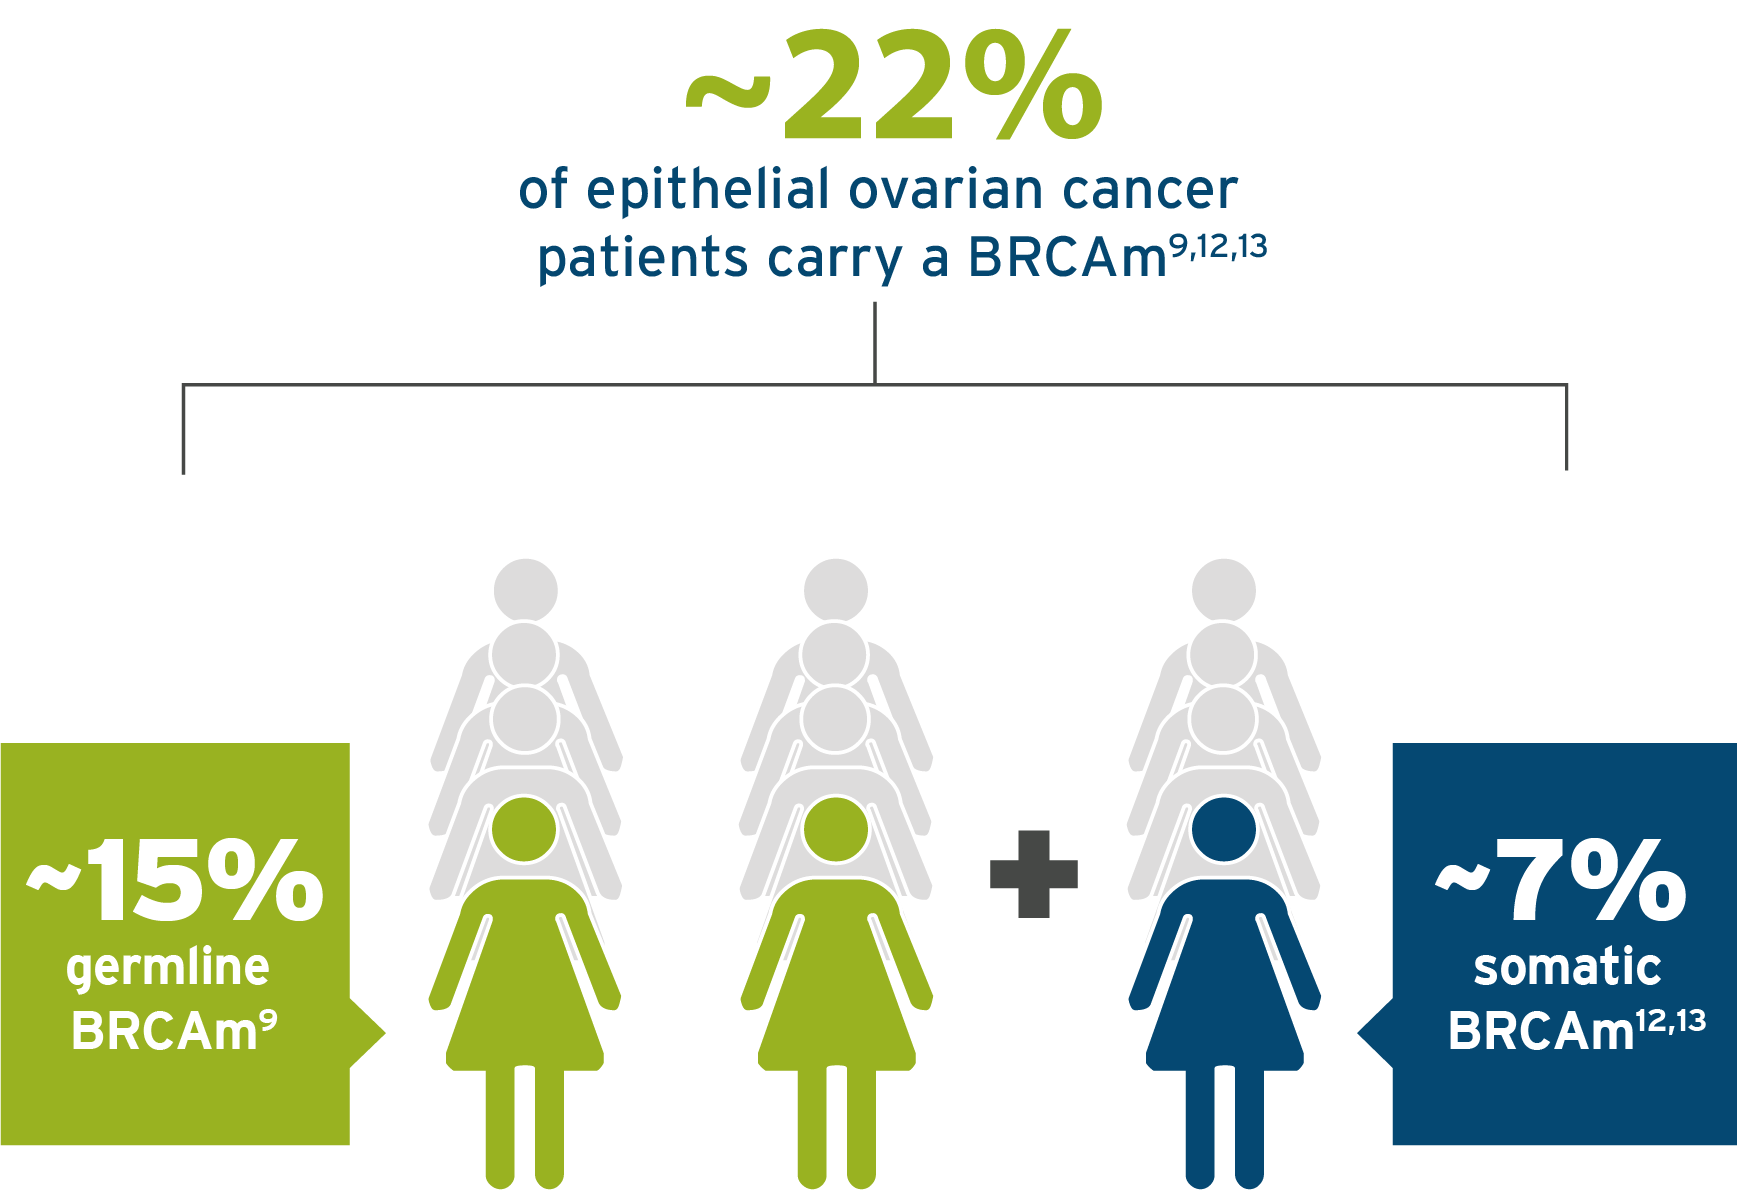 22% of epithelial ovarian cancer patients carry a BRCAm